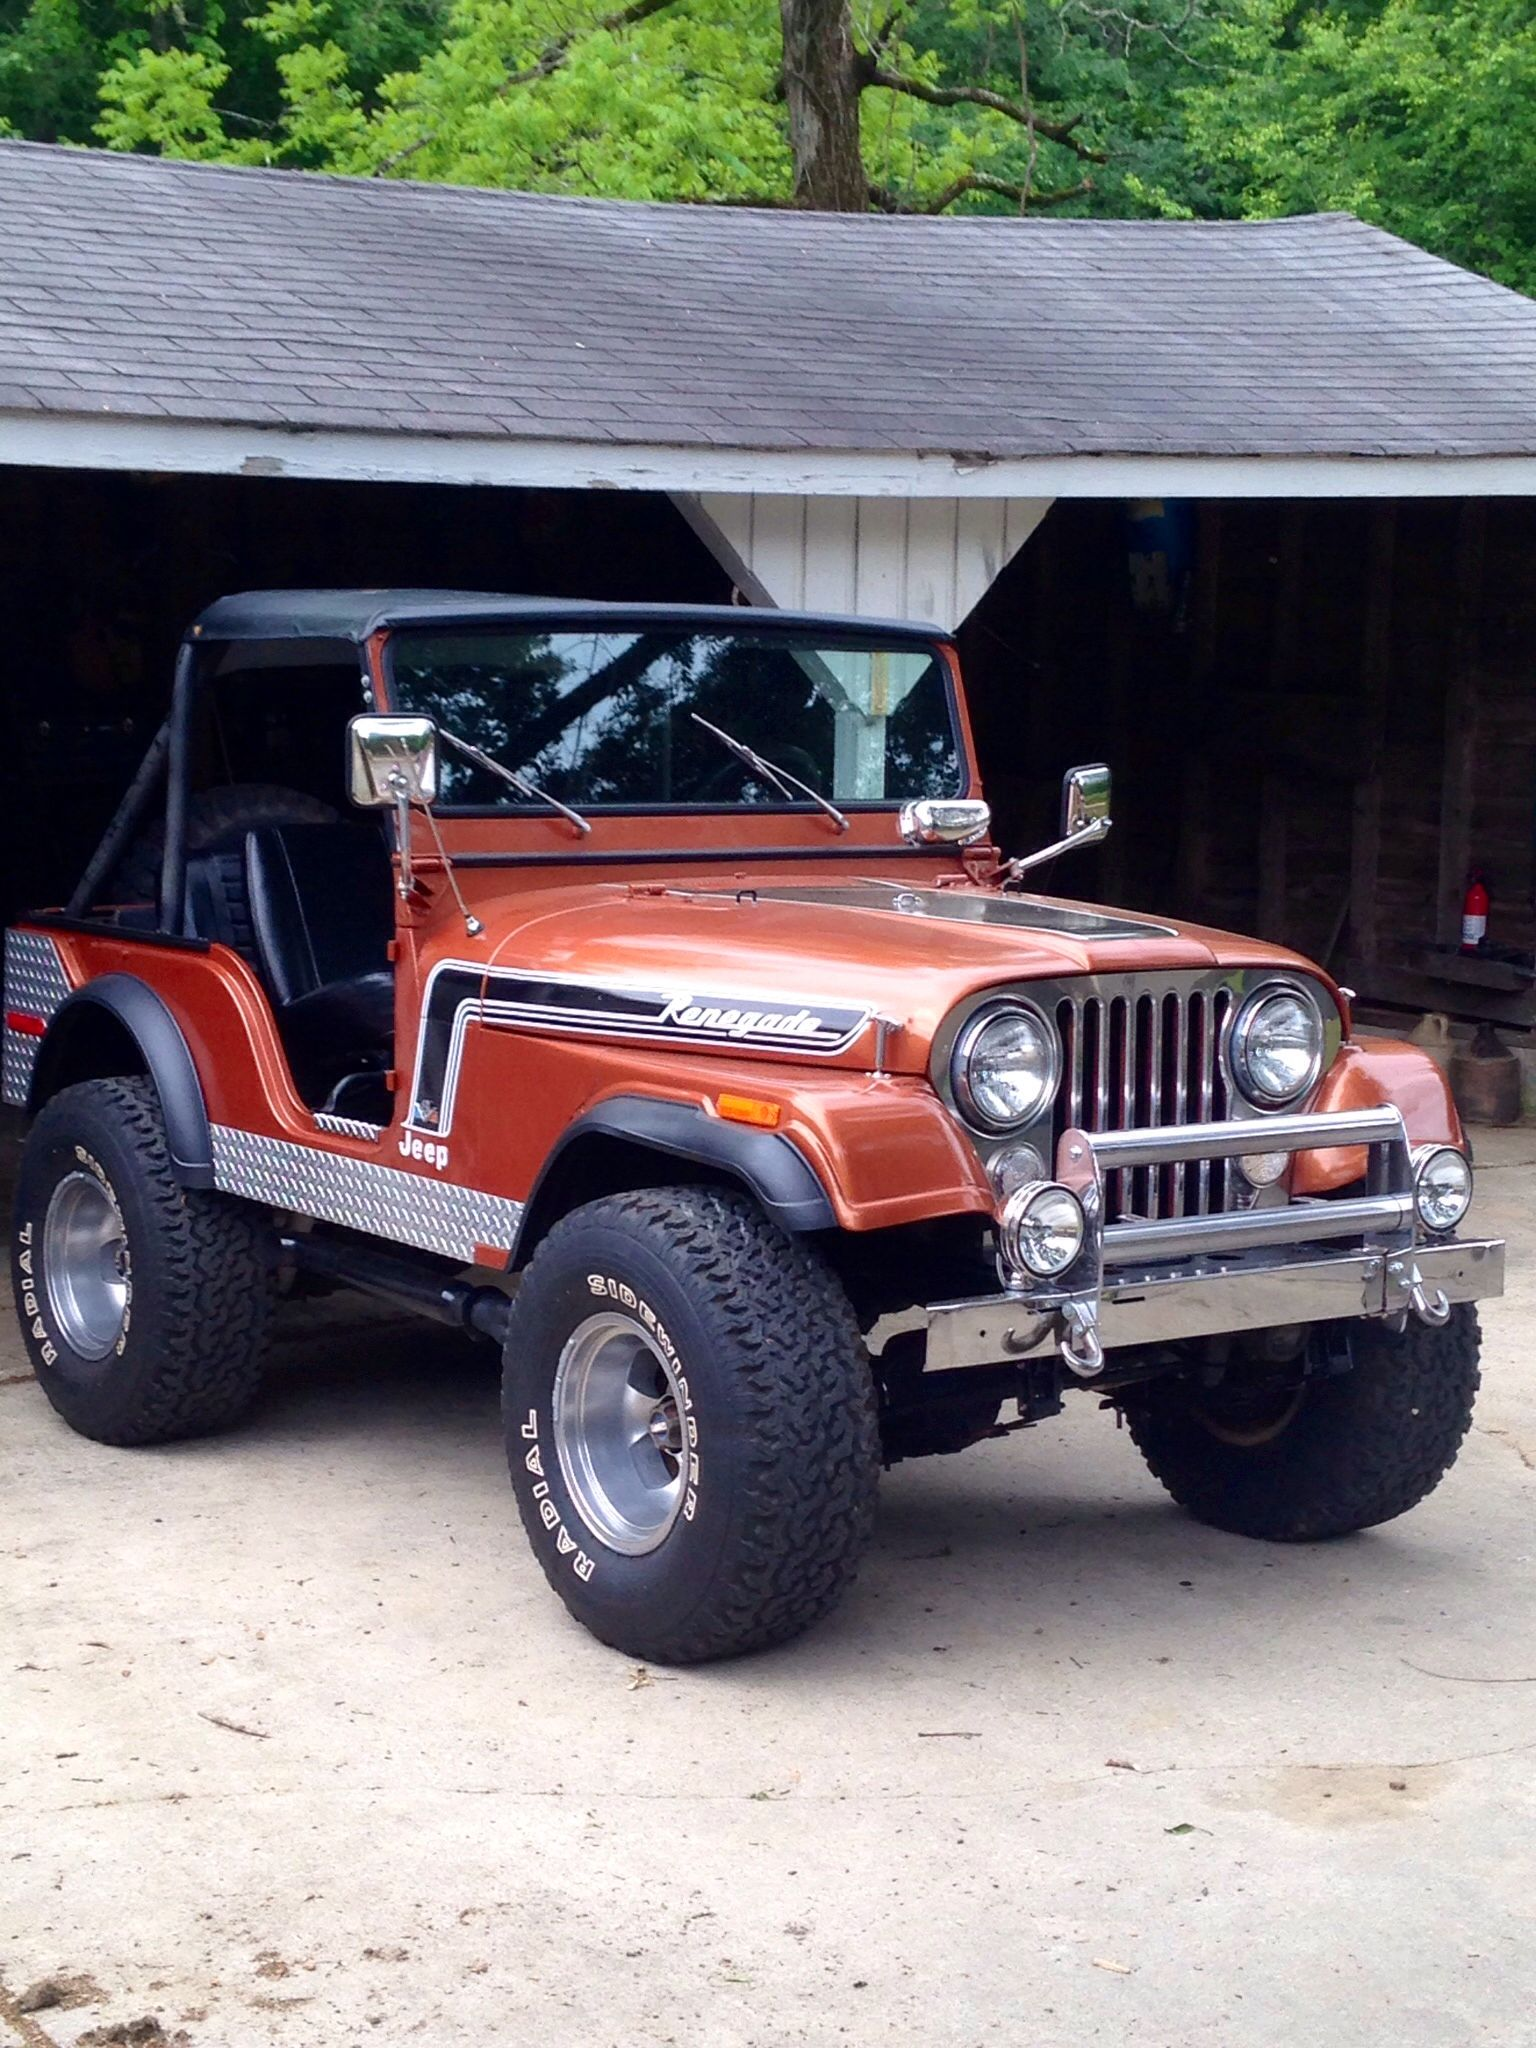 1974 Jeep Cj5 Maintenance Of Old Vehicles The Material For New